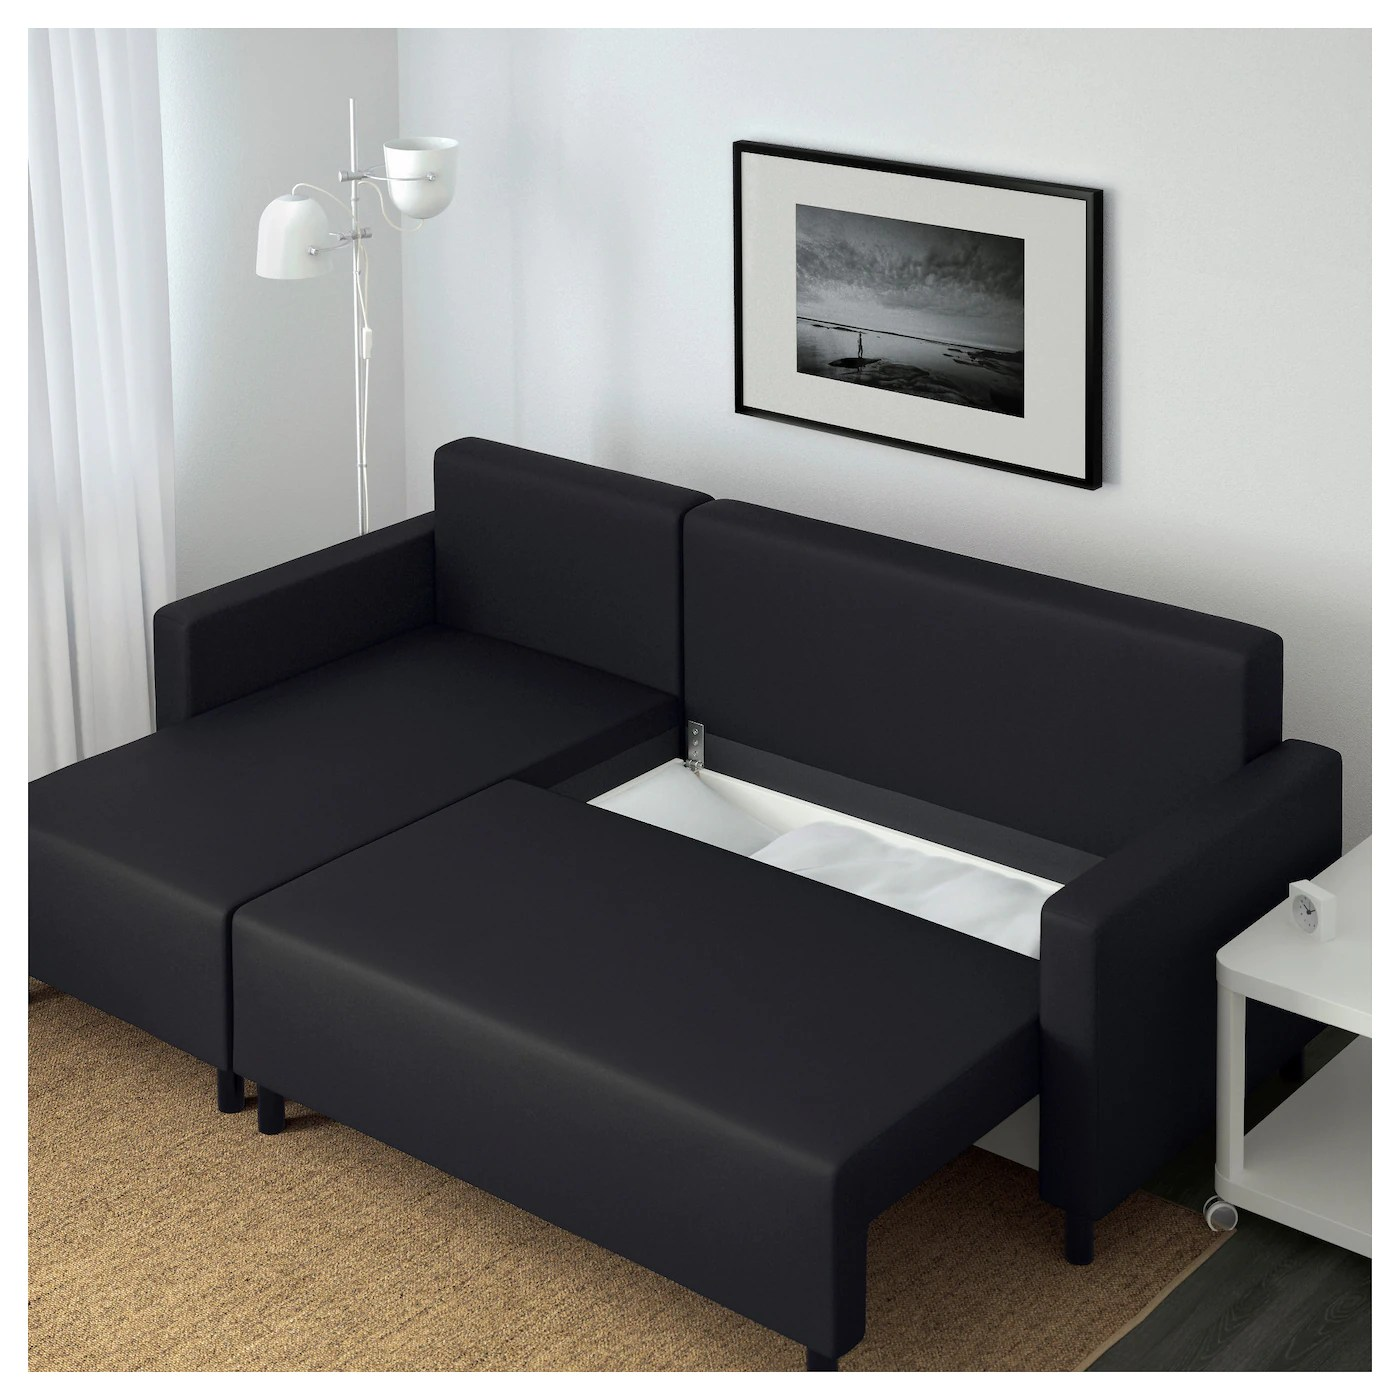 ikea bed chair wedding covers bournemouth lugnvik sofa with chaise longue granån black